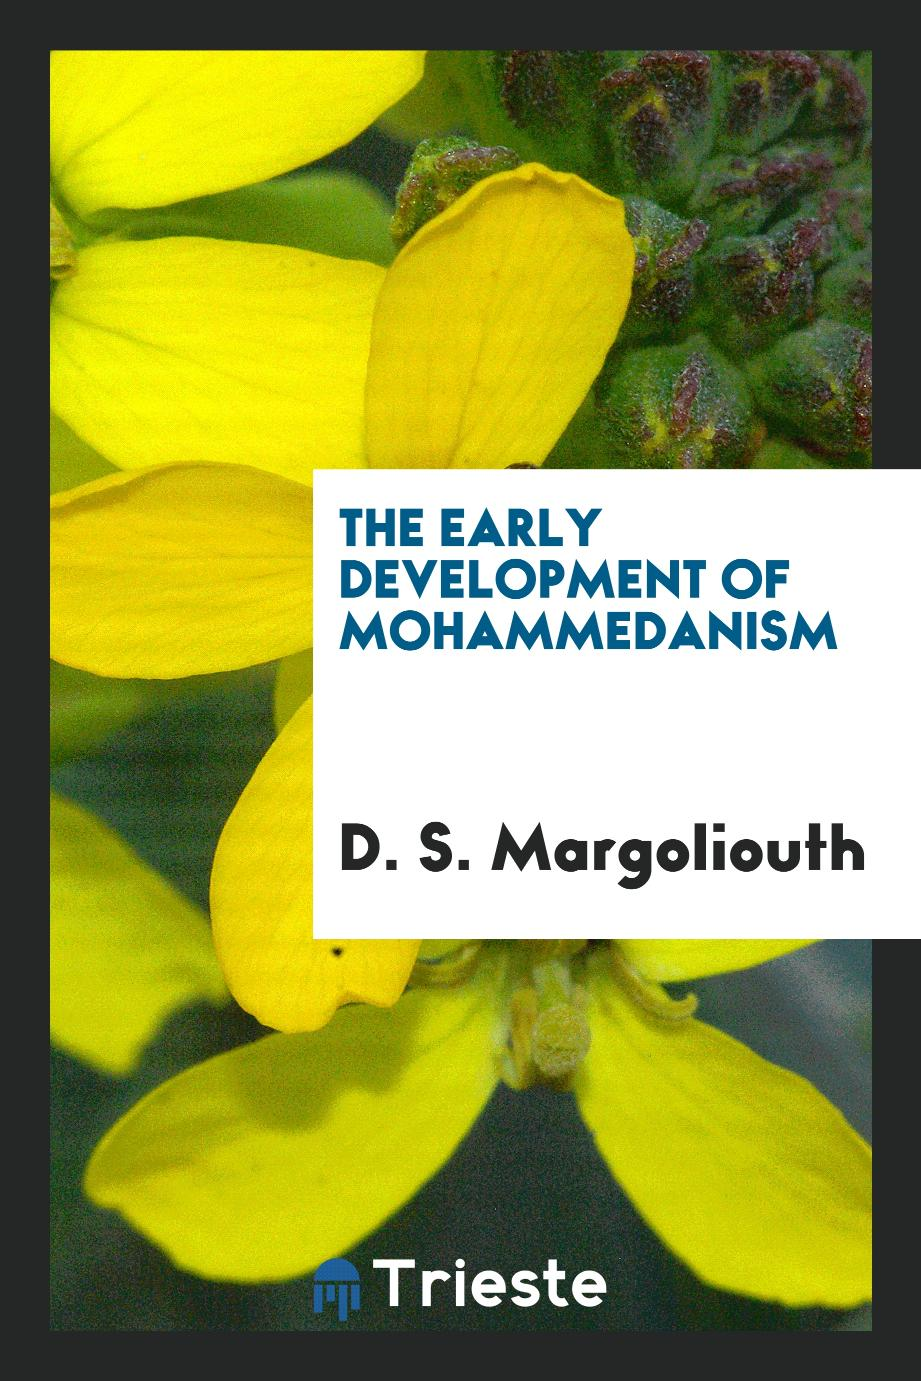 The early development of Mohammedanism